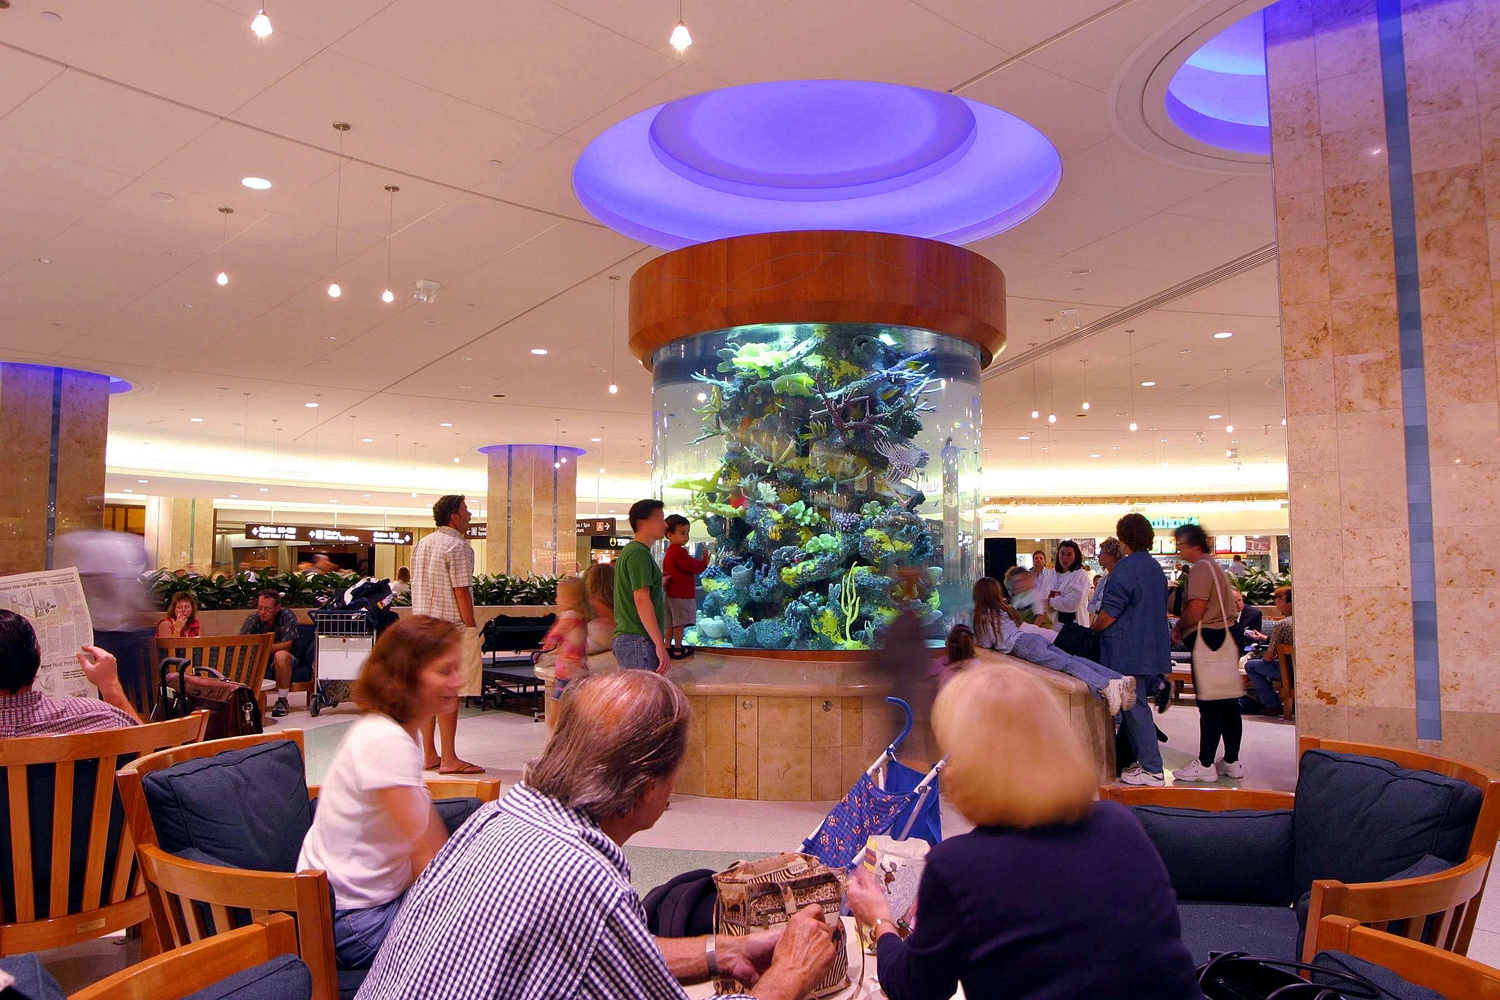 Aquarium in Food Court